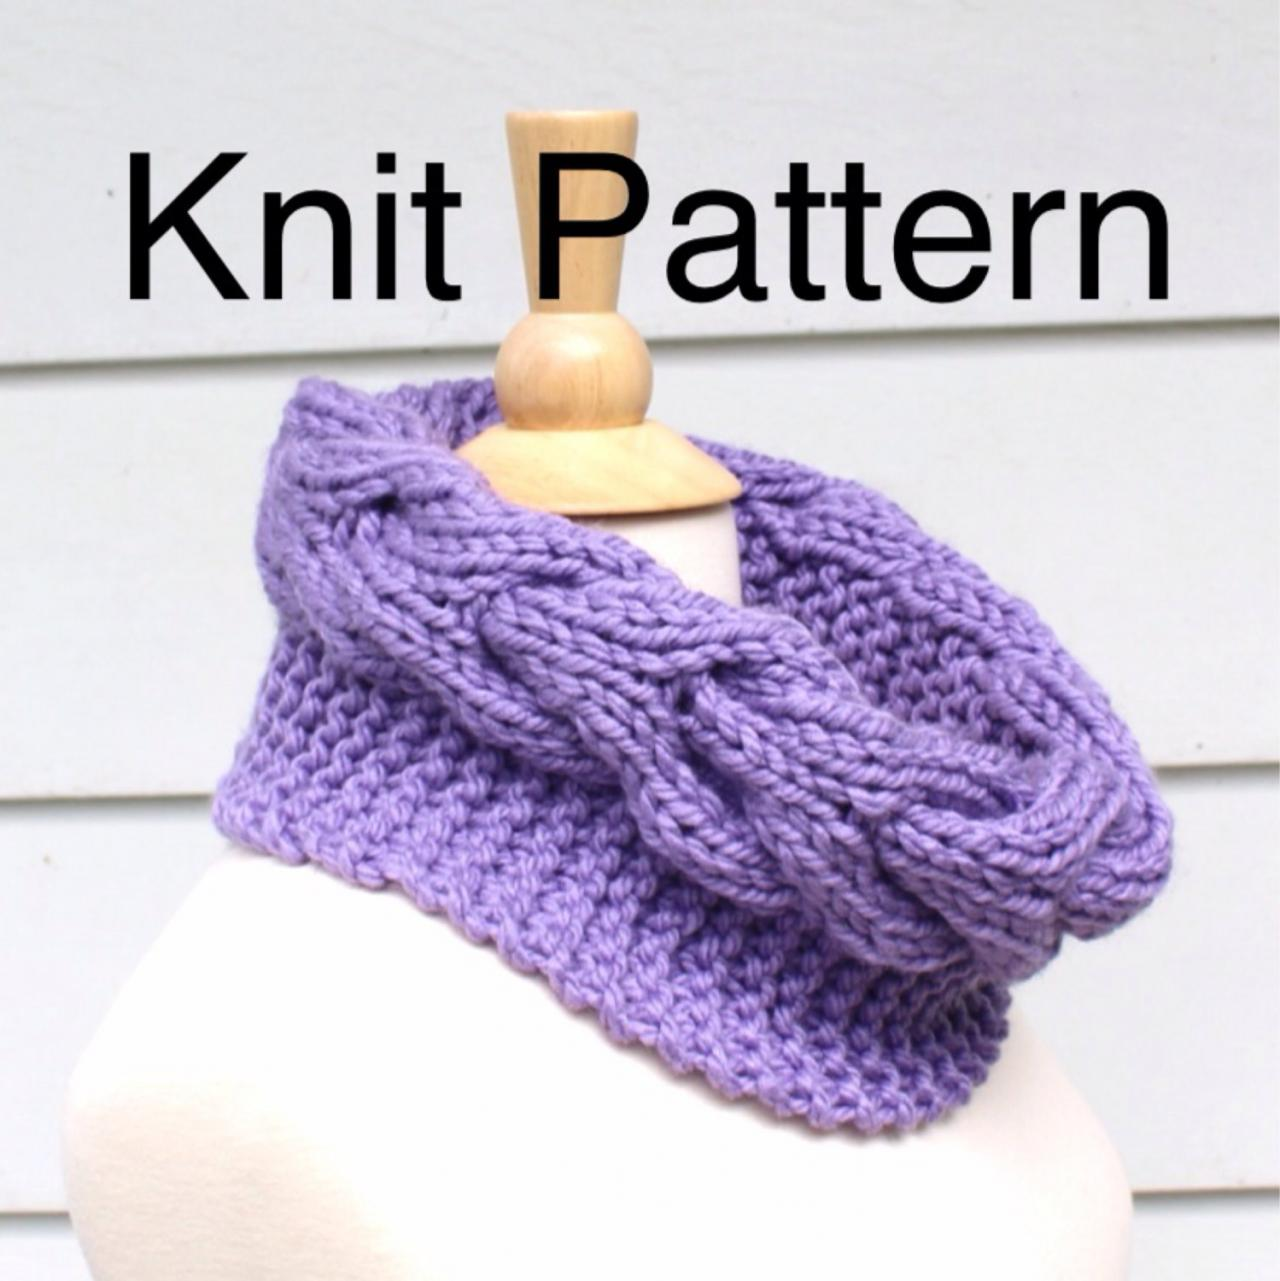 Knit Pattern Cowl Pattern- Hand Knit Cowl Scarf Pattern With A Horseshoe Cabl...